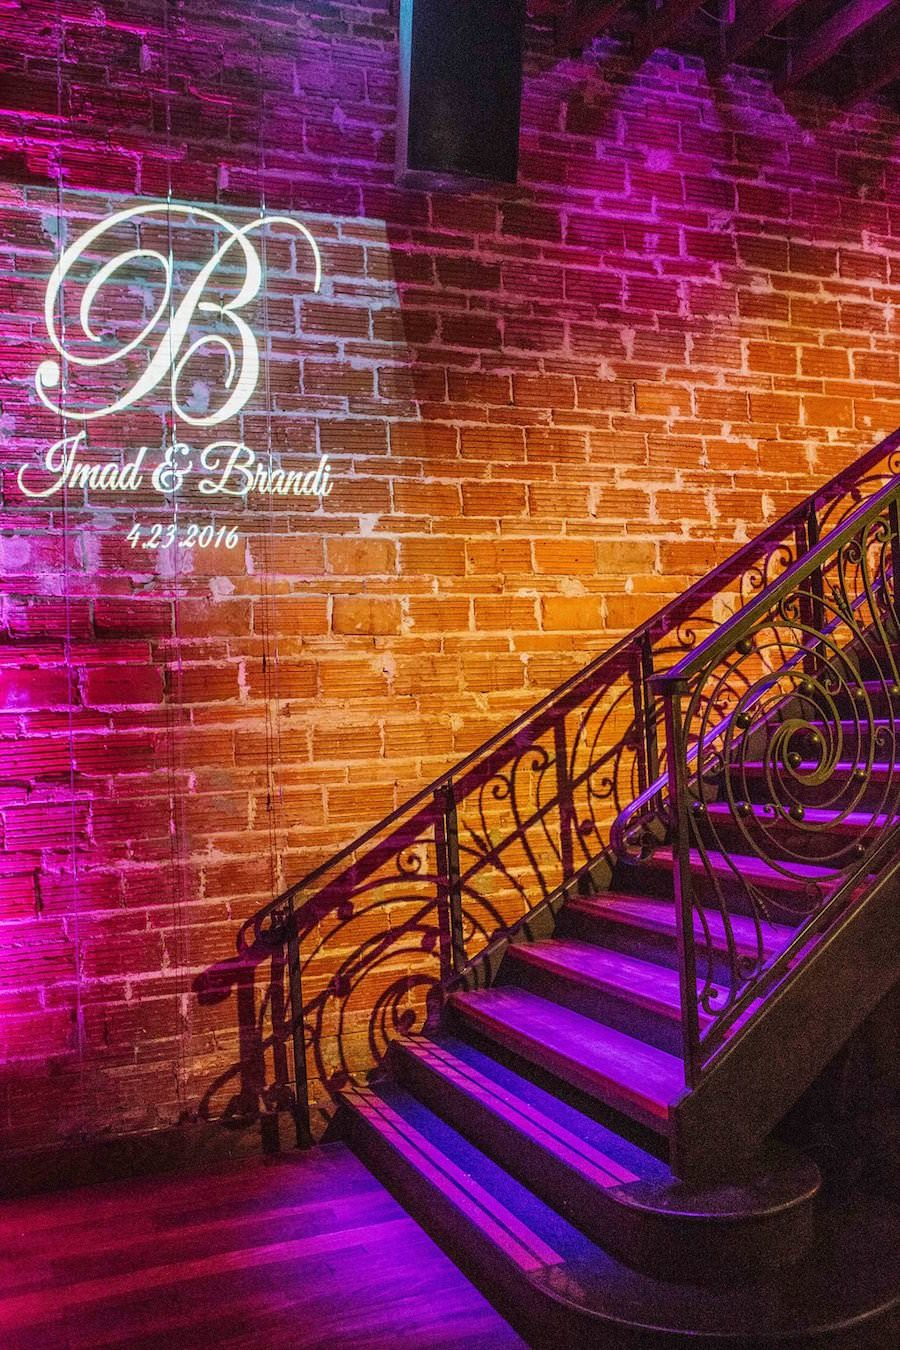 Wedding Reception with Purple and Gold Uplighting and Custom GOBO Monogram Initials | Downtown St Pete Wedding Venue NOVA 535 | Purple Orange and Turquoise Moroccan Inspired St. Pete Wedding